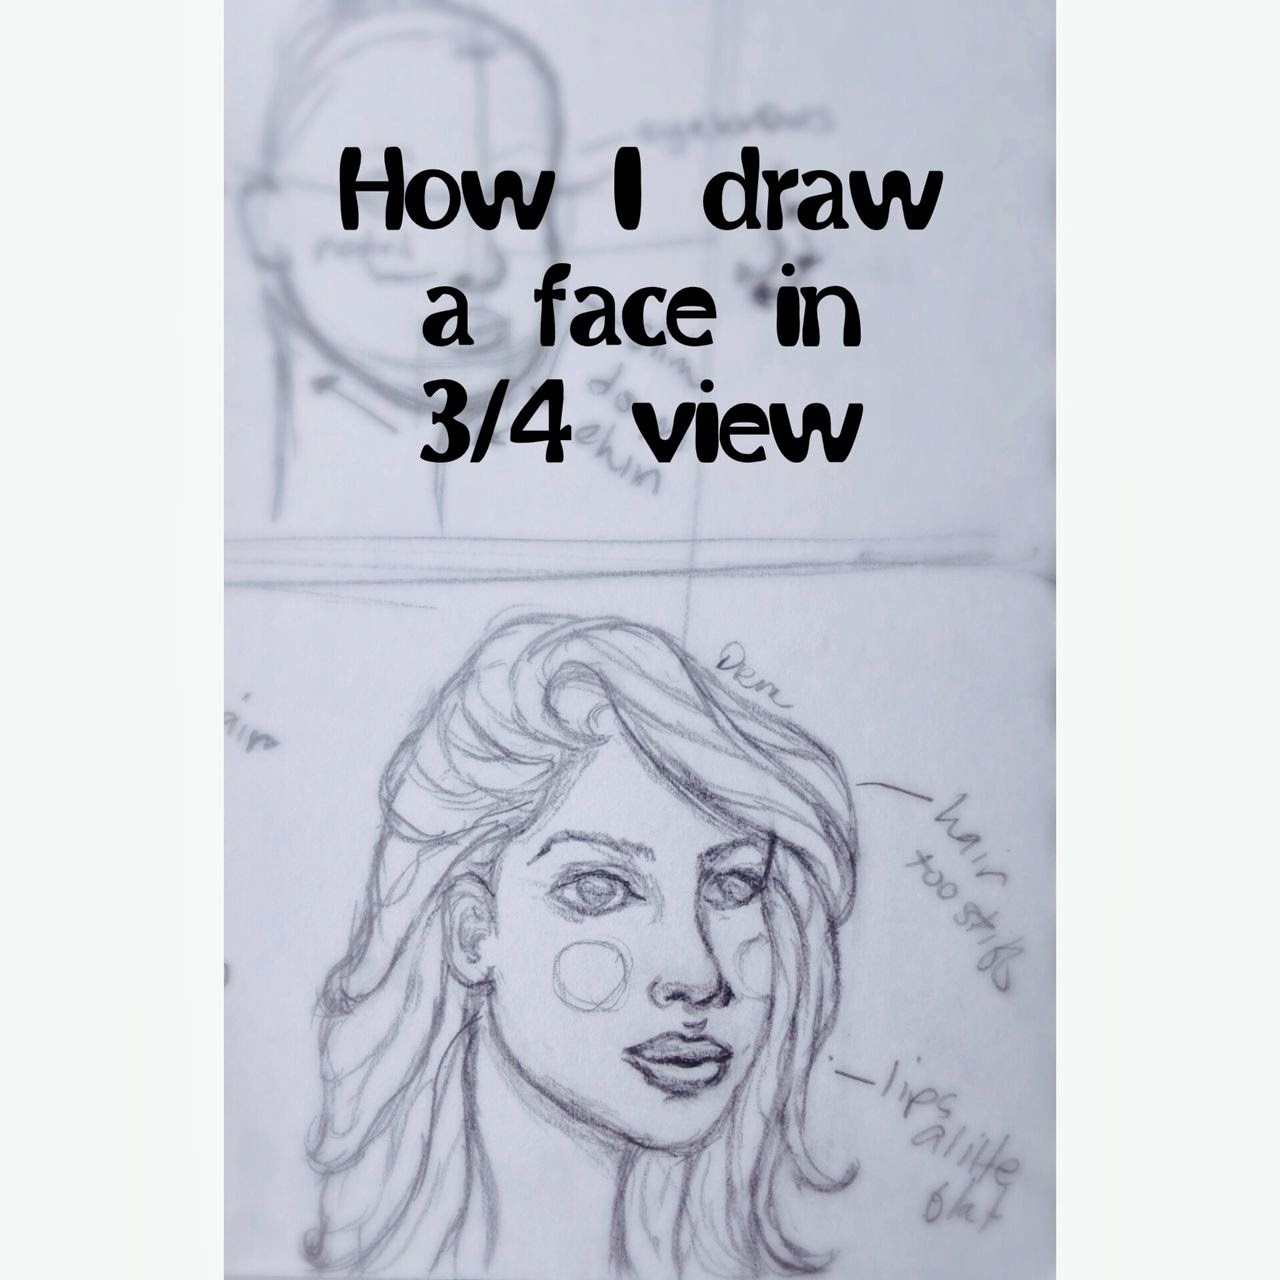 How to draw a face in 3/4 view